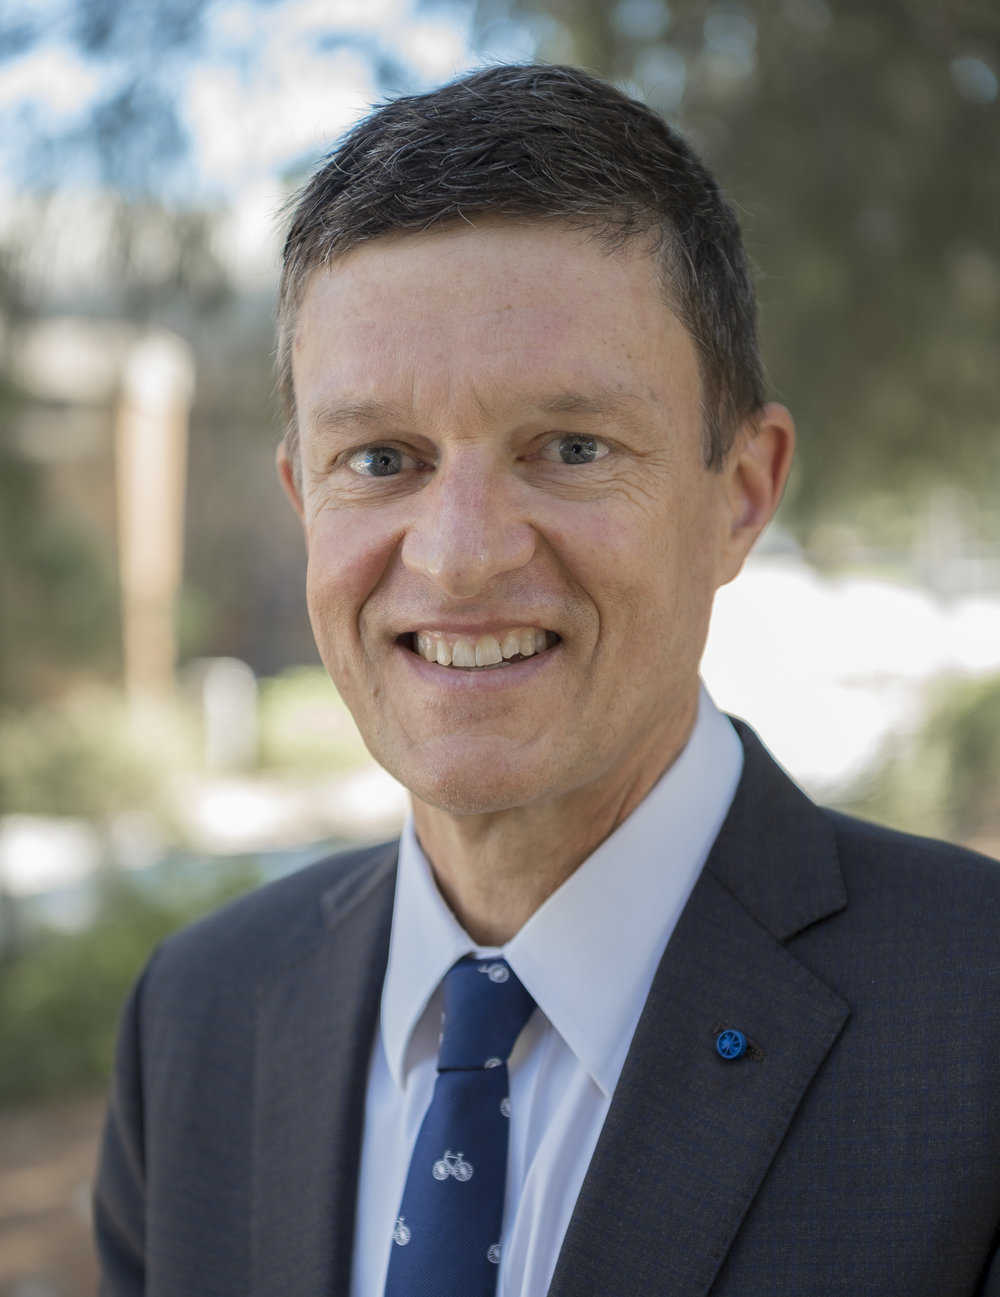 <p><b>Prof. Marc Parlange</b><br>Provost and Senior Vice-President<br>Monash University</p>